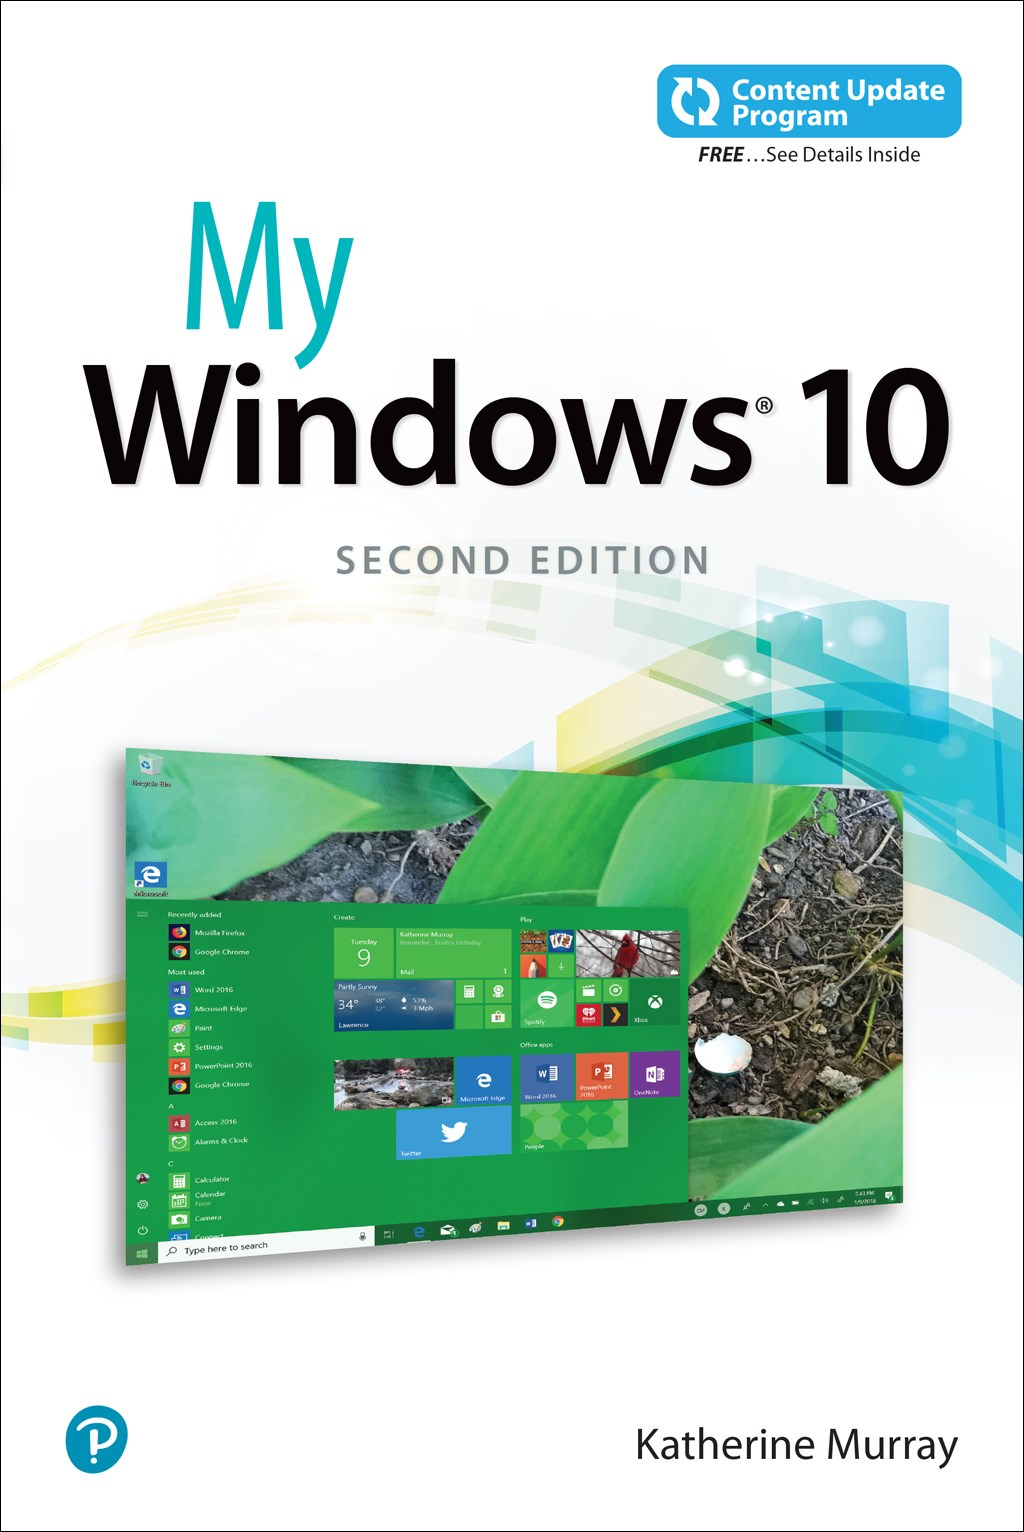 My Windows 10 (includes video and Content Update Program), 2nd Edition